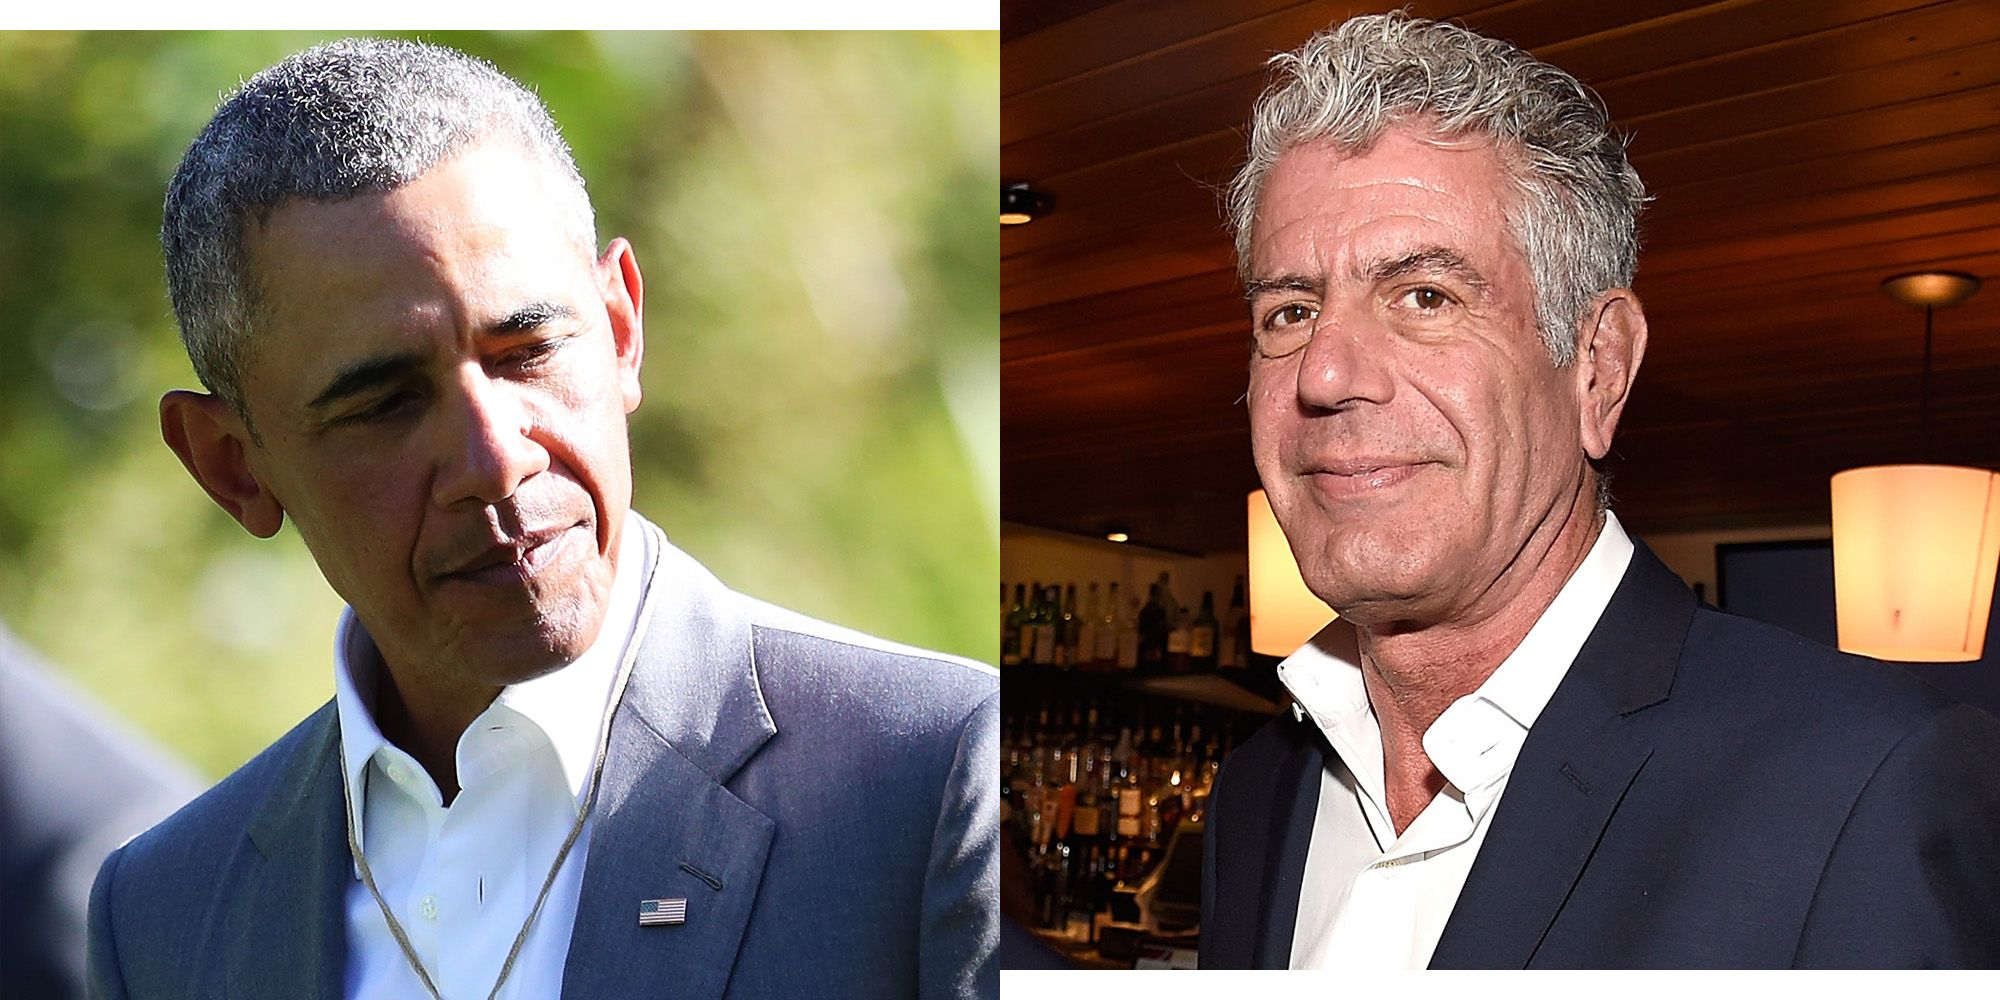 Barack Obama On Anthony Bourdain He Made Us A Little Less Afraid Of The Unknown